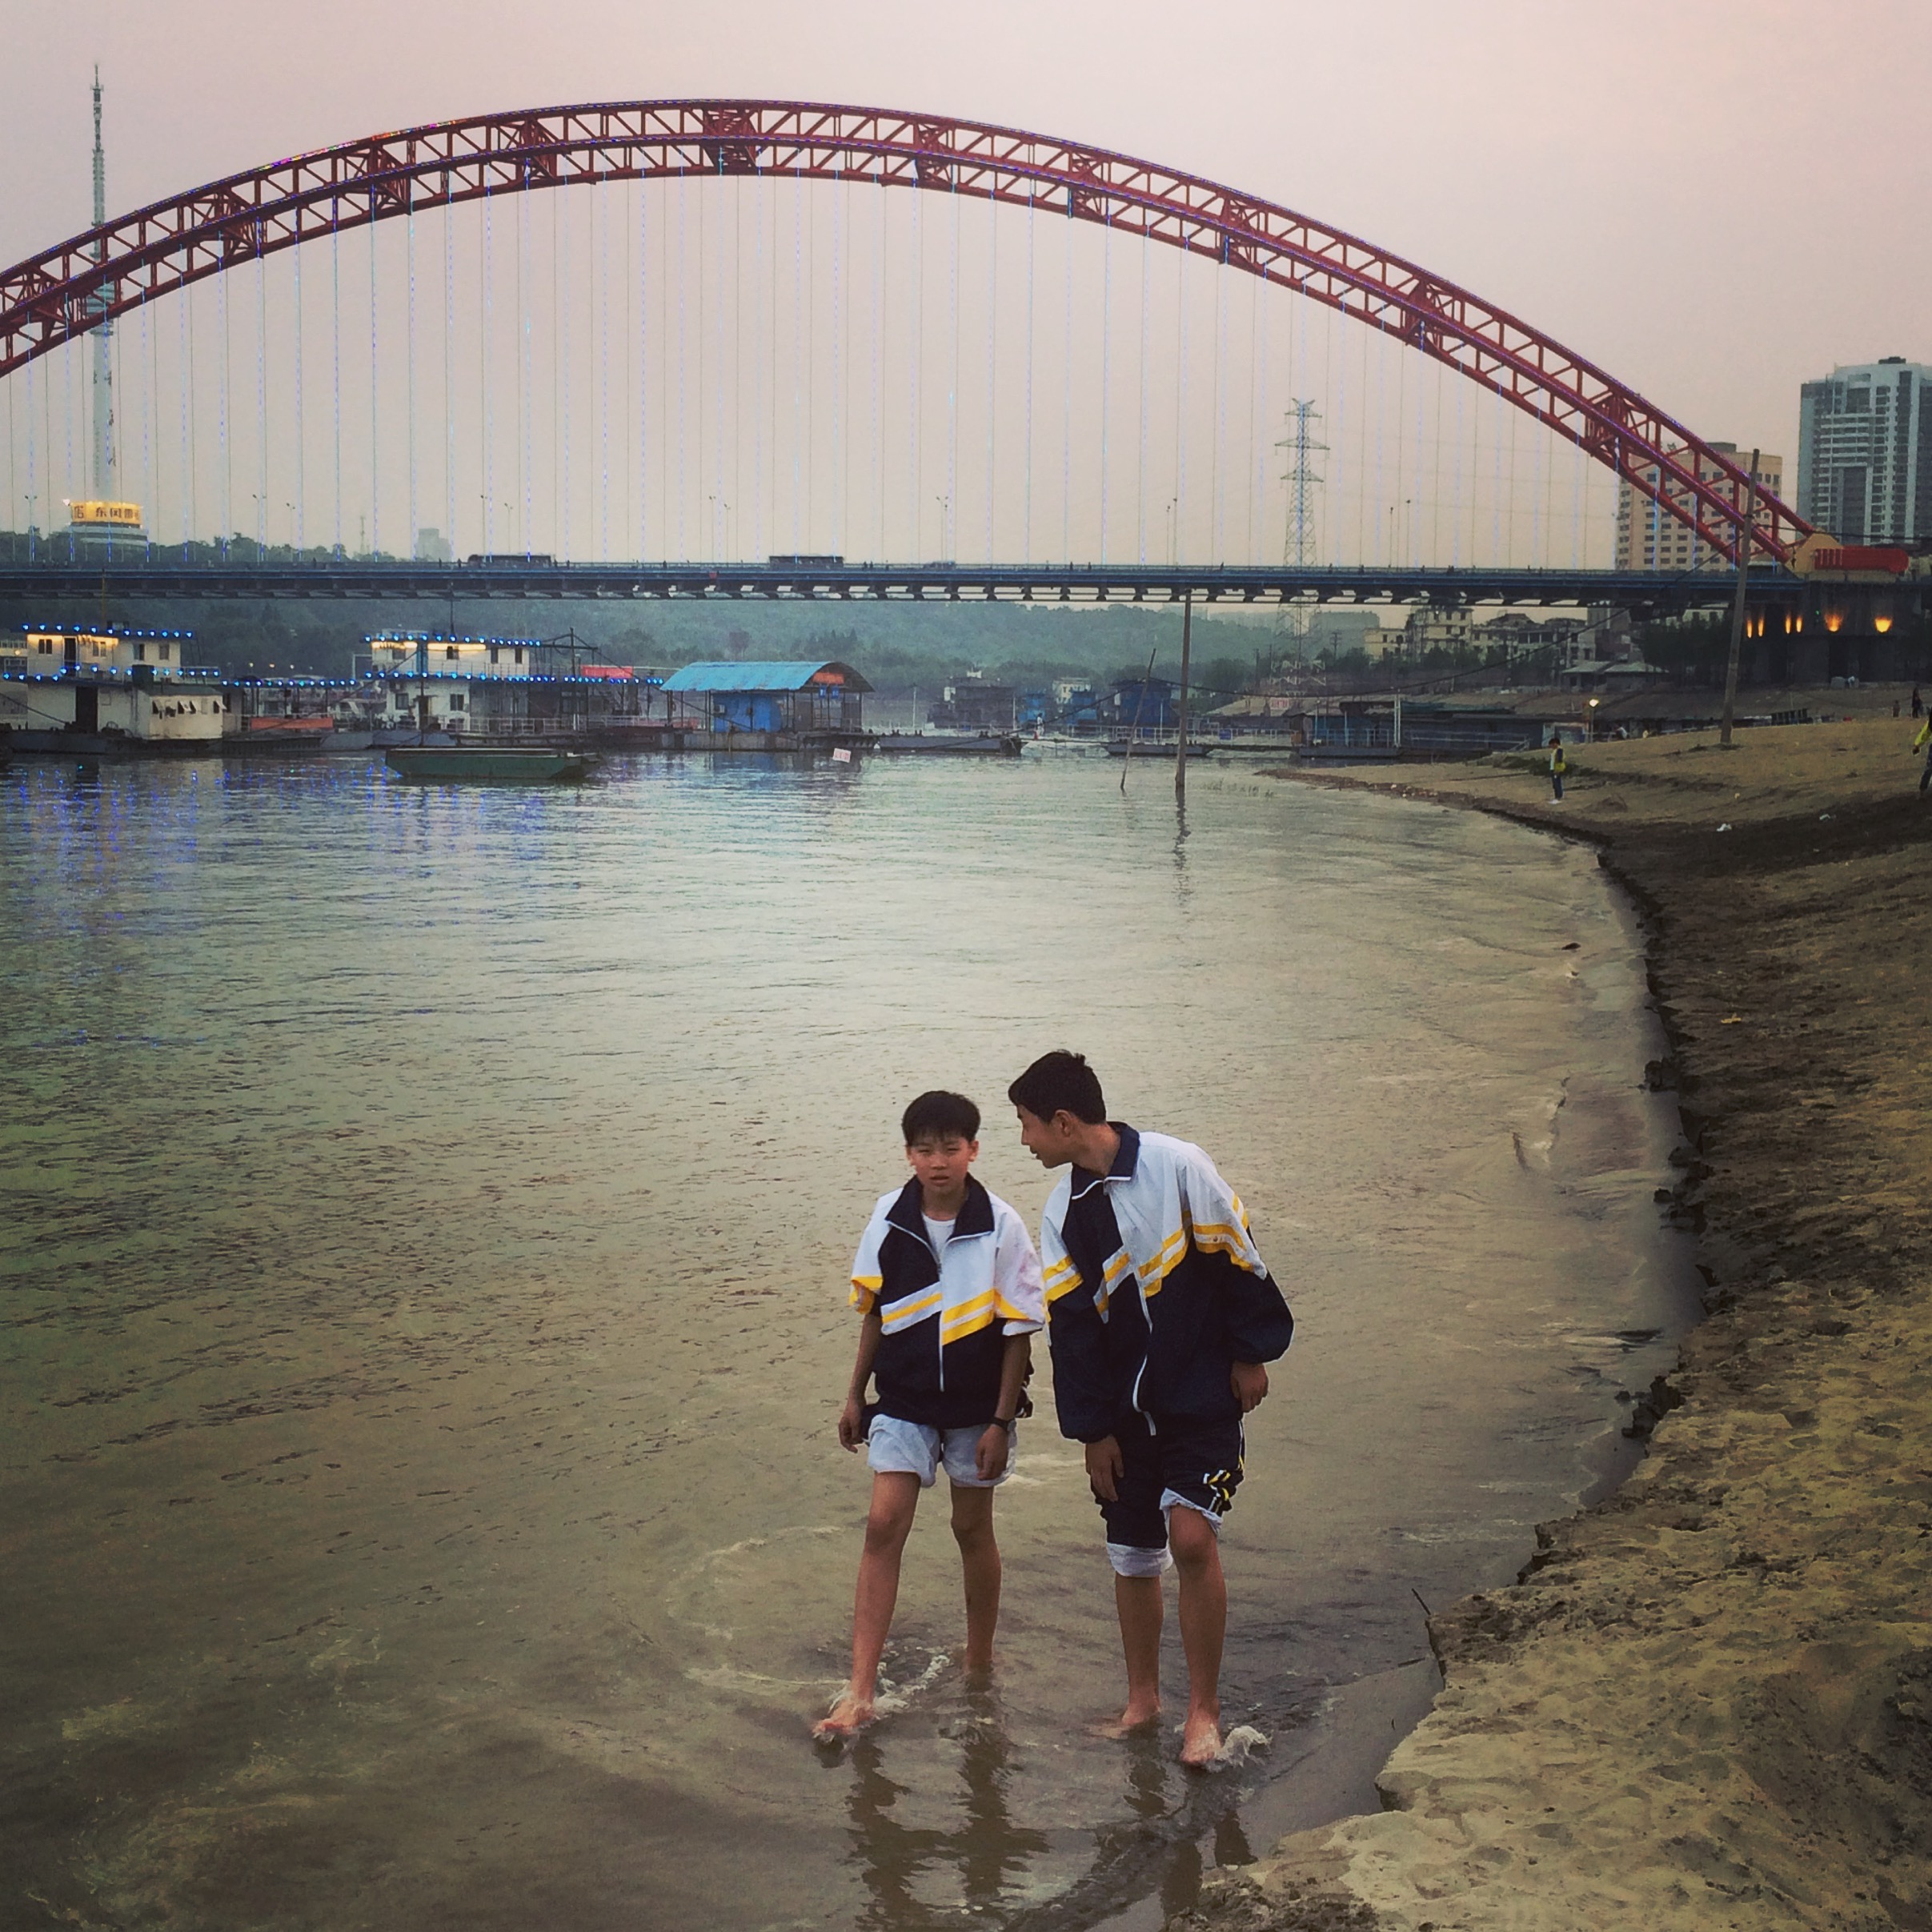 High school kids wading paddling in the Yangtze River, Wuhan.